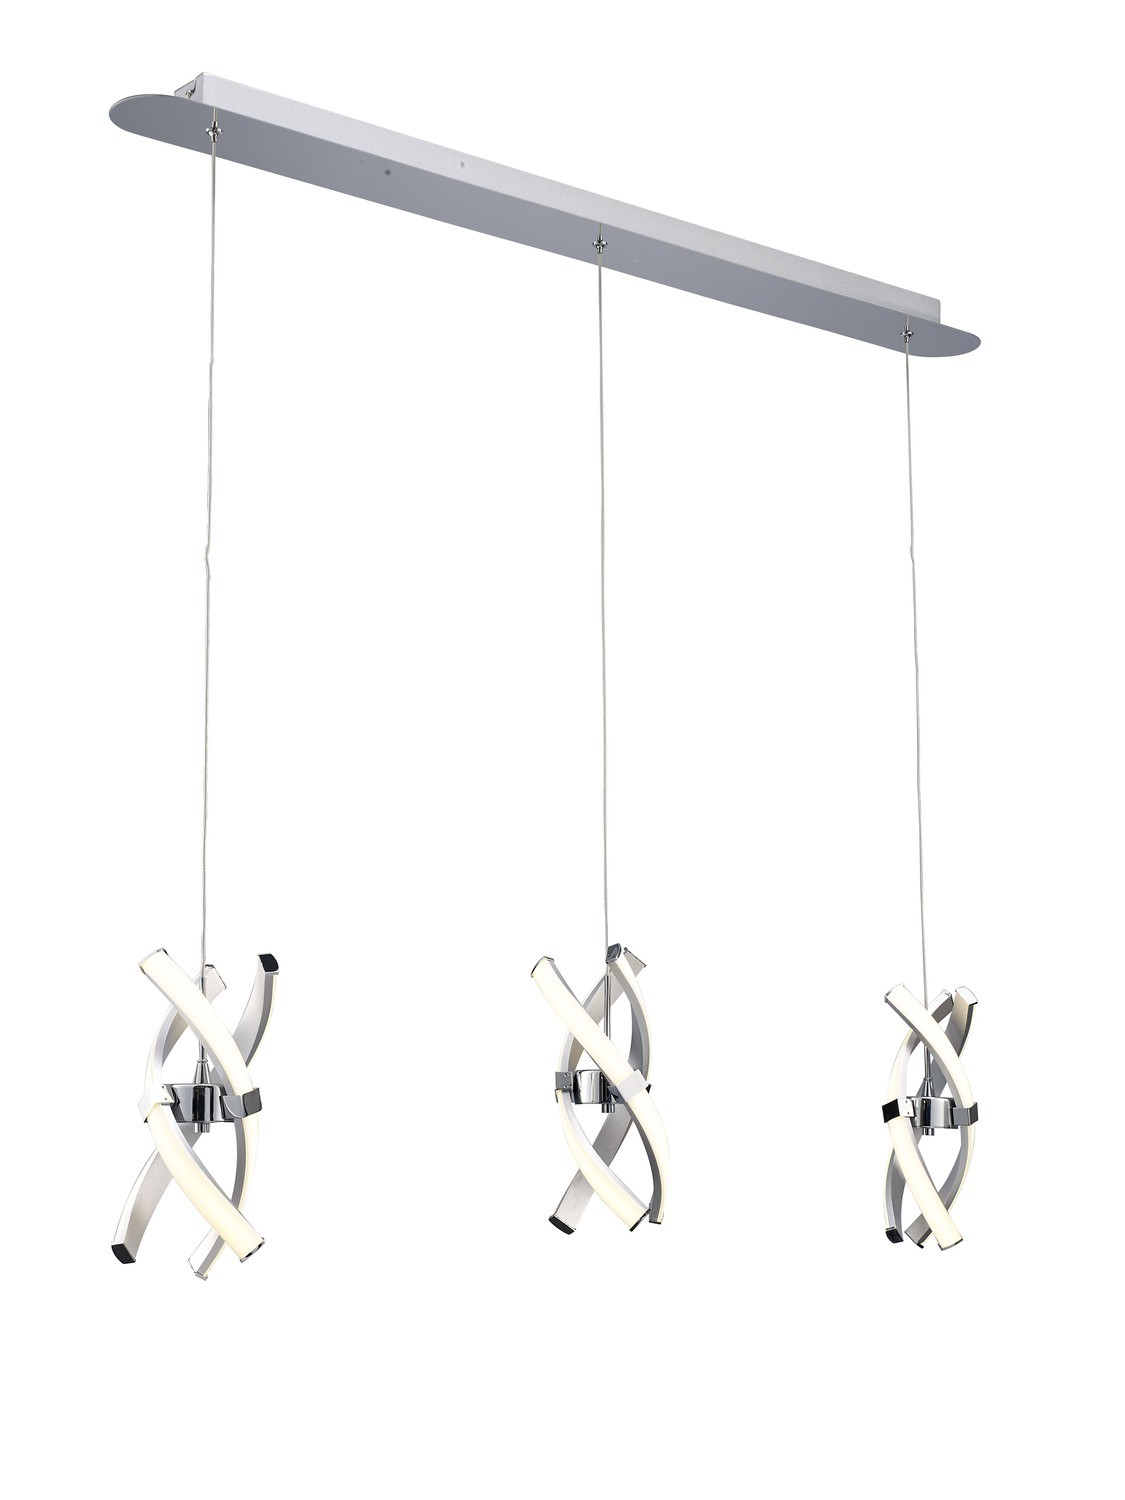 Espirales 3 Drop Pendant 3 Light 36W LED Line 3000K, 2520lm, Silver/Frosted Acrylic/Polished Chrome